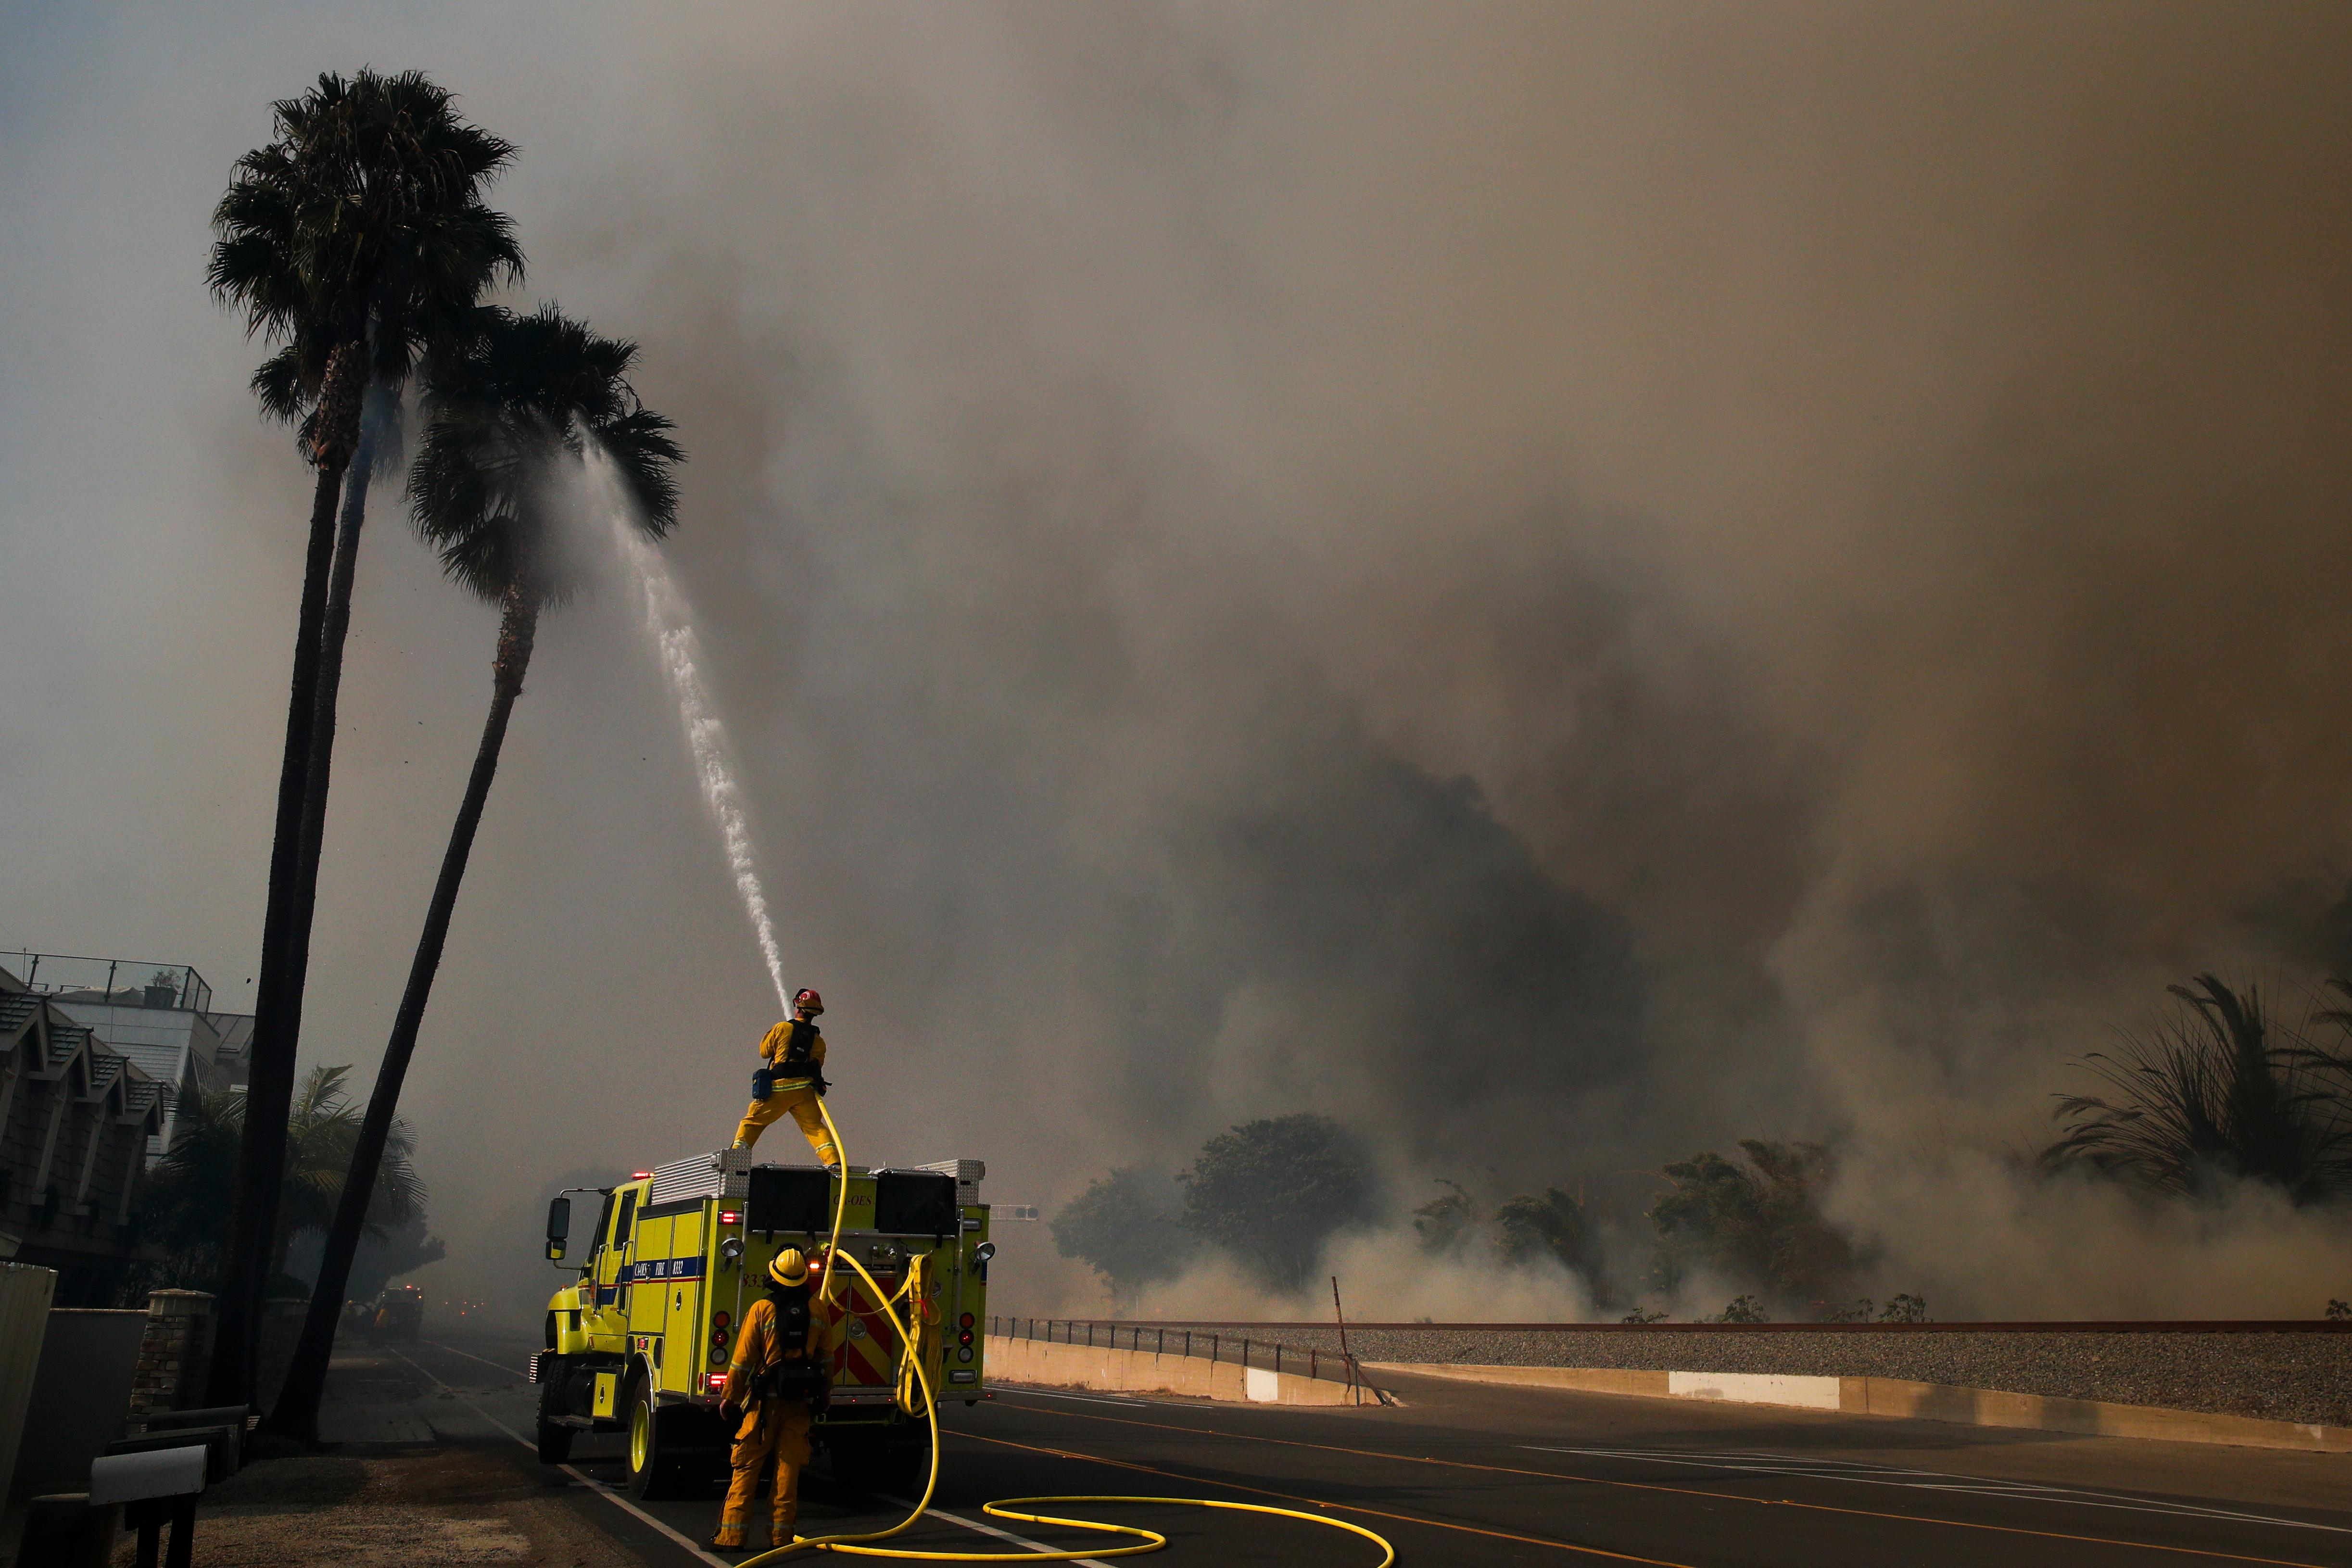 Firefighters battle a wildfire as smoke rises from burning palm trees at Faria State Beach in Ventura, Calif., Thursday, Dec. 7, 2017. The wind-swept blazes have forced tens of thousands of evacuations and destroyed dozens of homes. (AP Photo/Jae C. Hong)